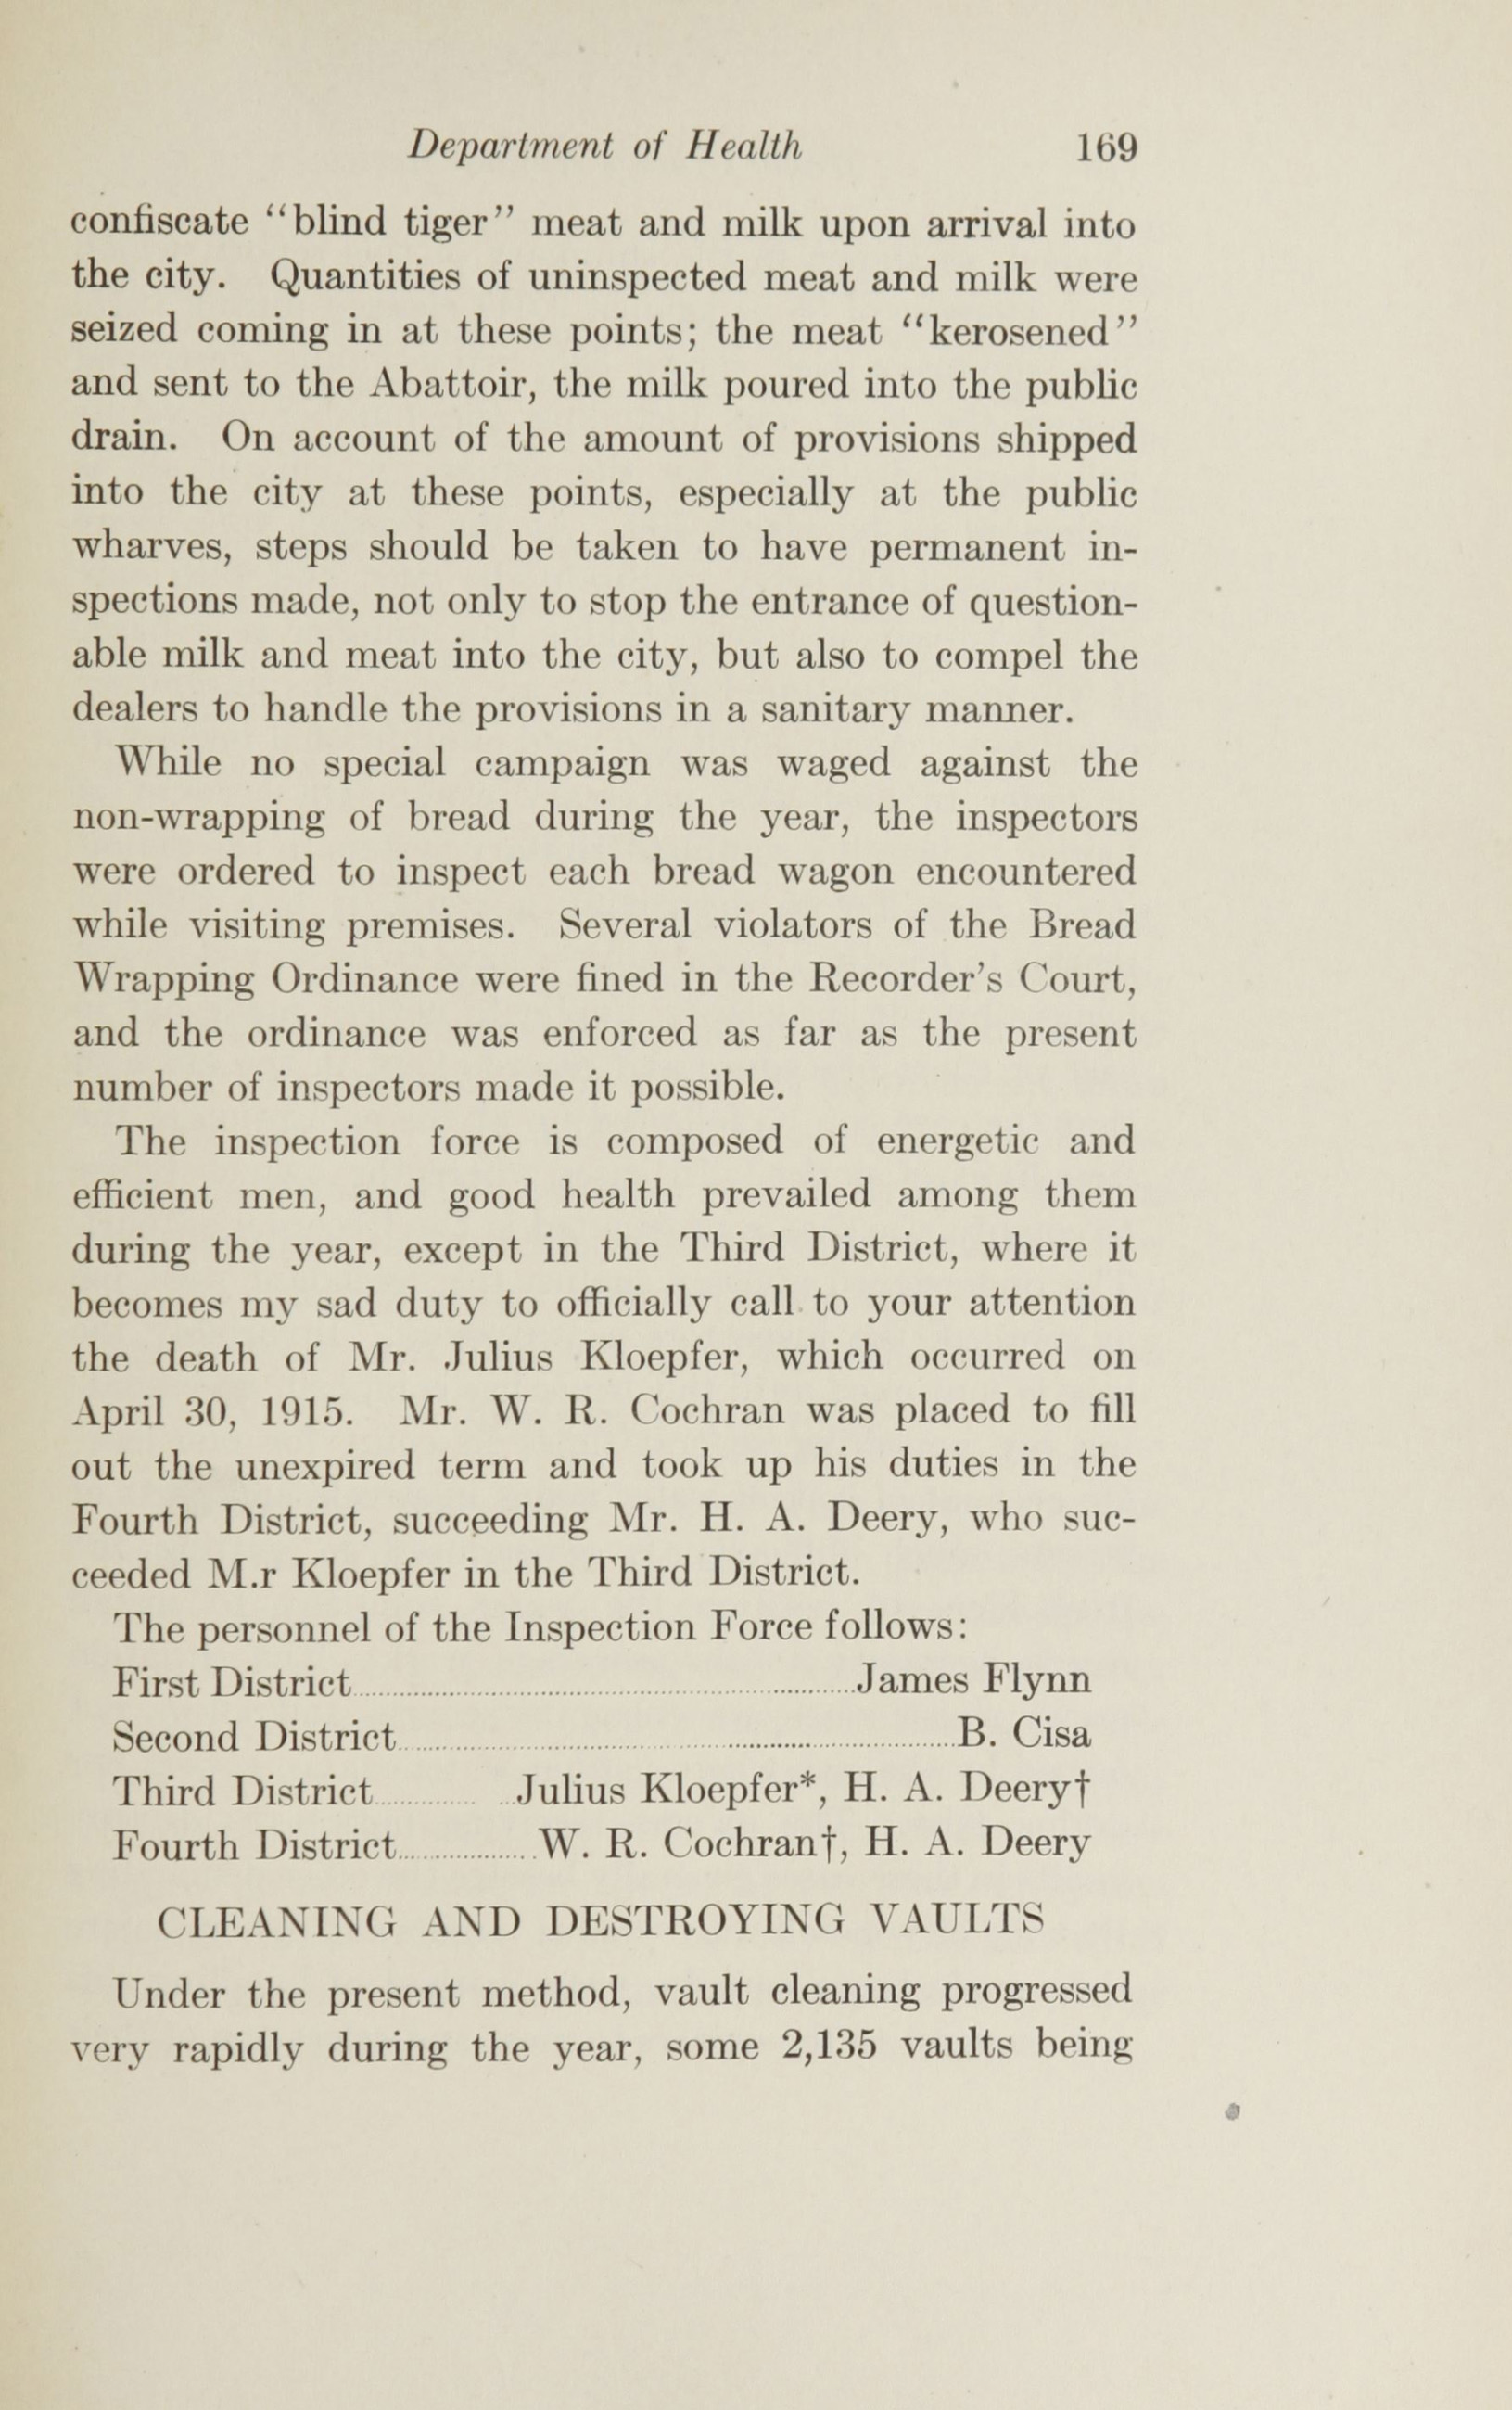 Charleston Yearbook, 1915, page 169